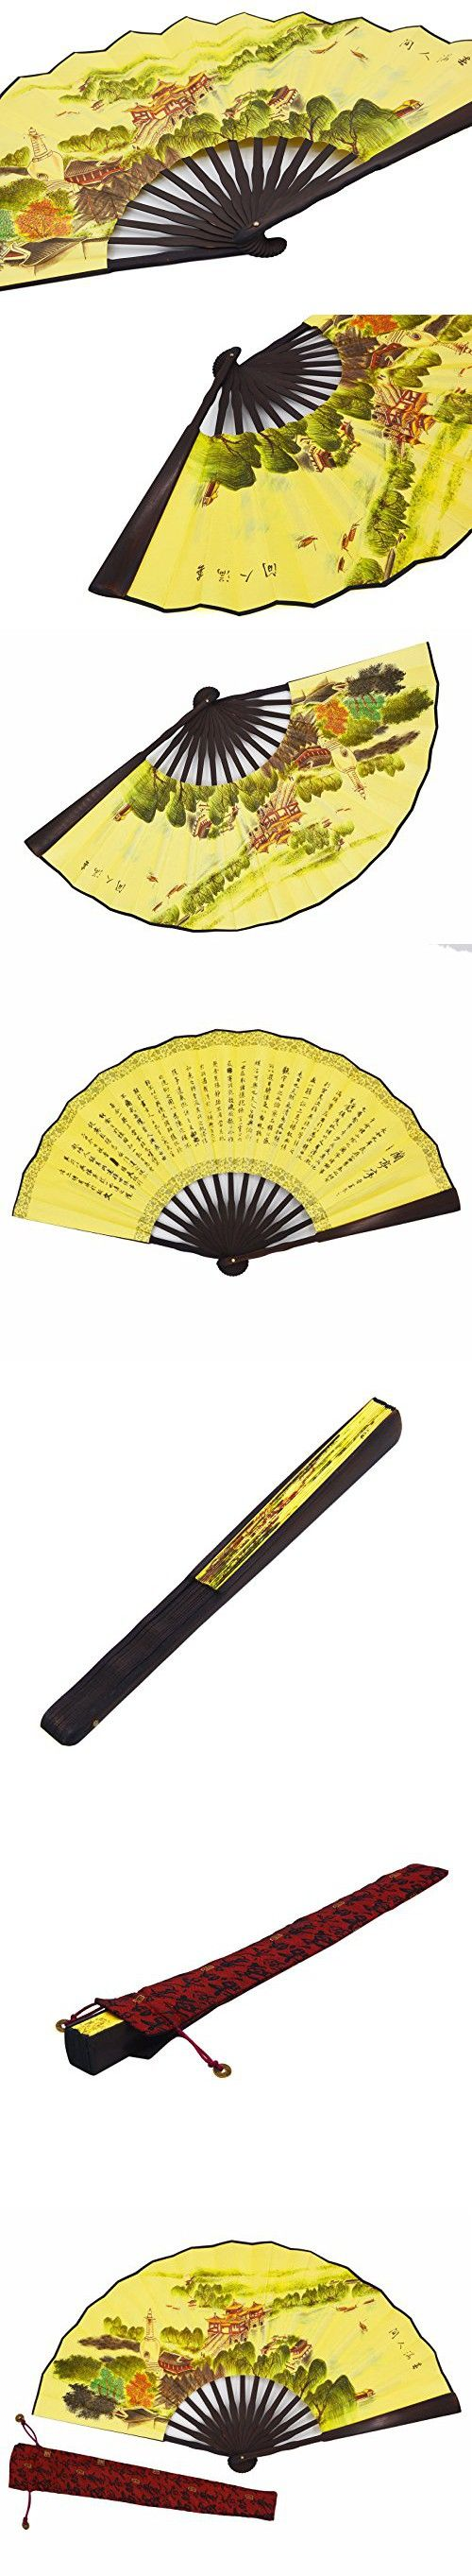 765 best Decorative Folding Fans images on Pinterest | Hand fans ...